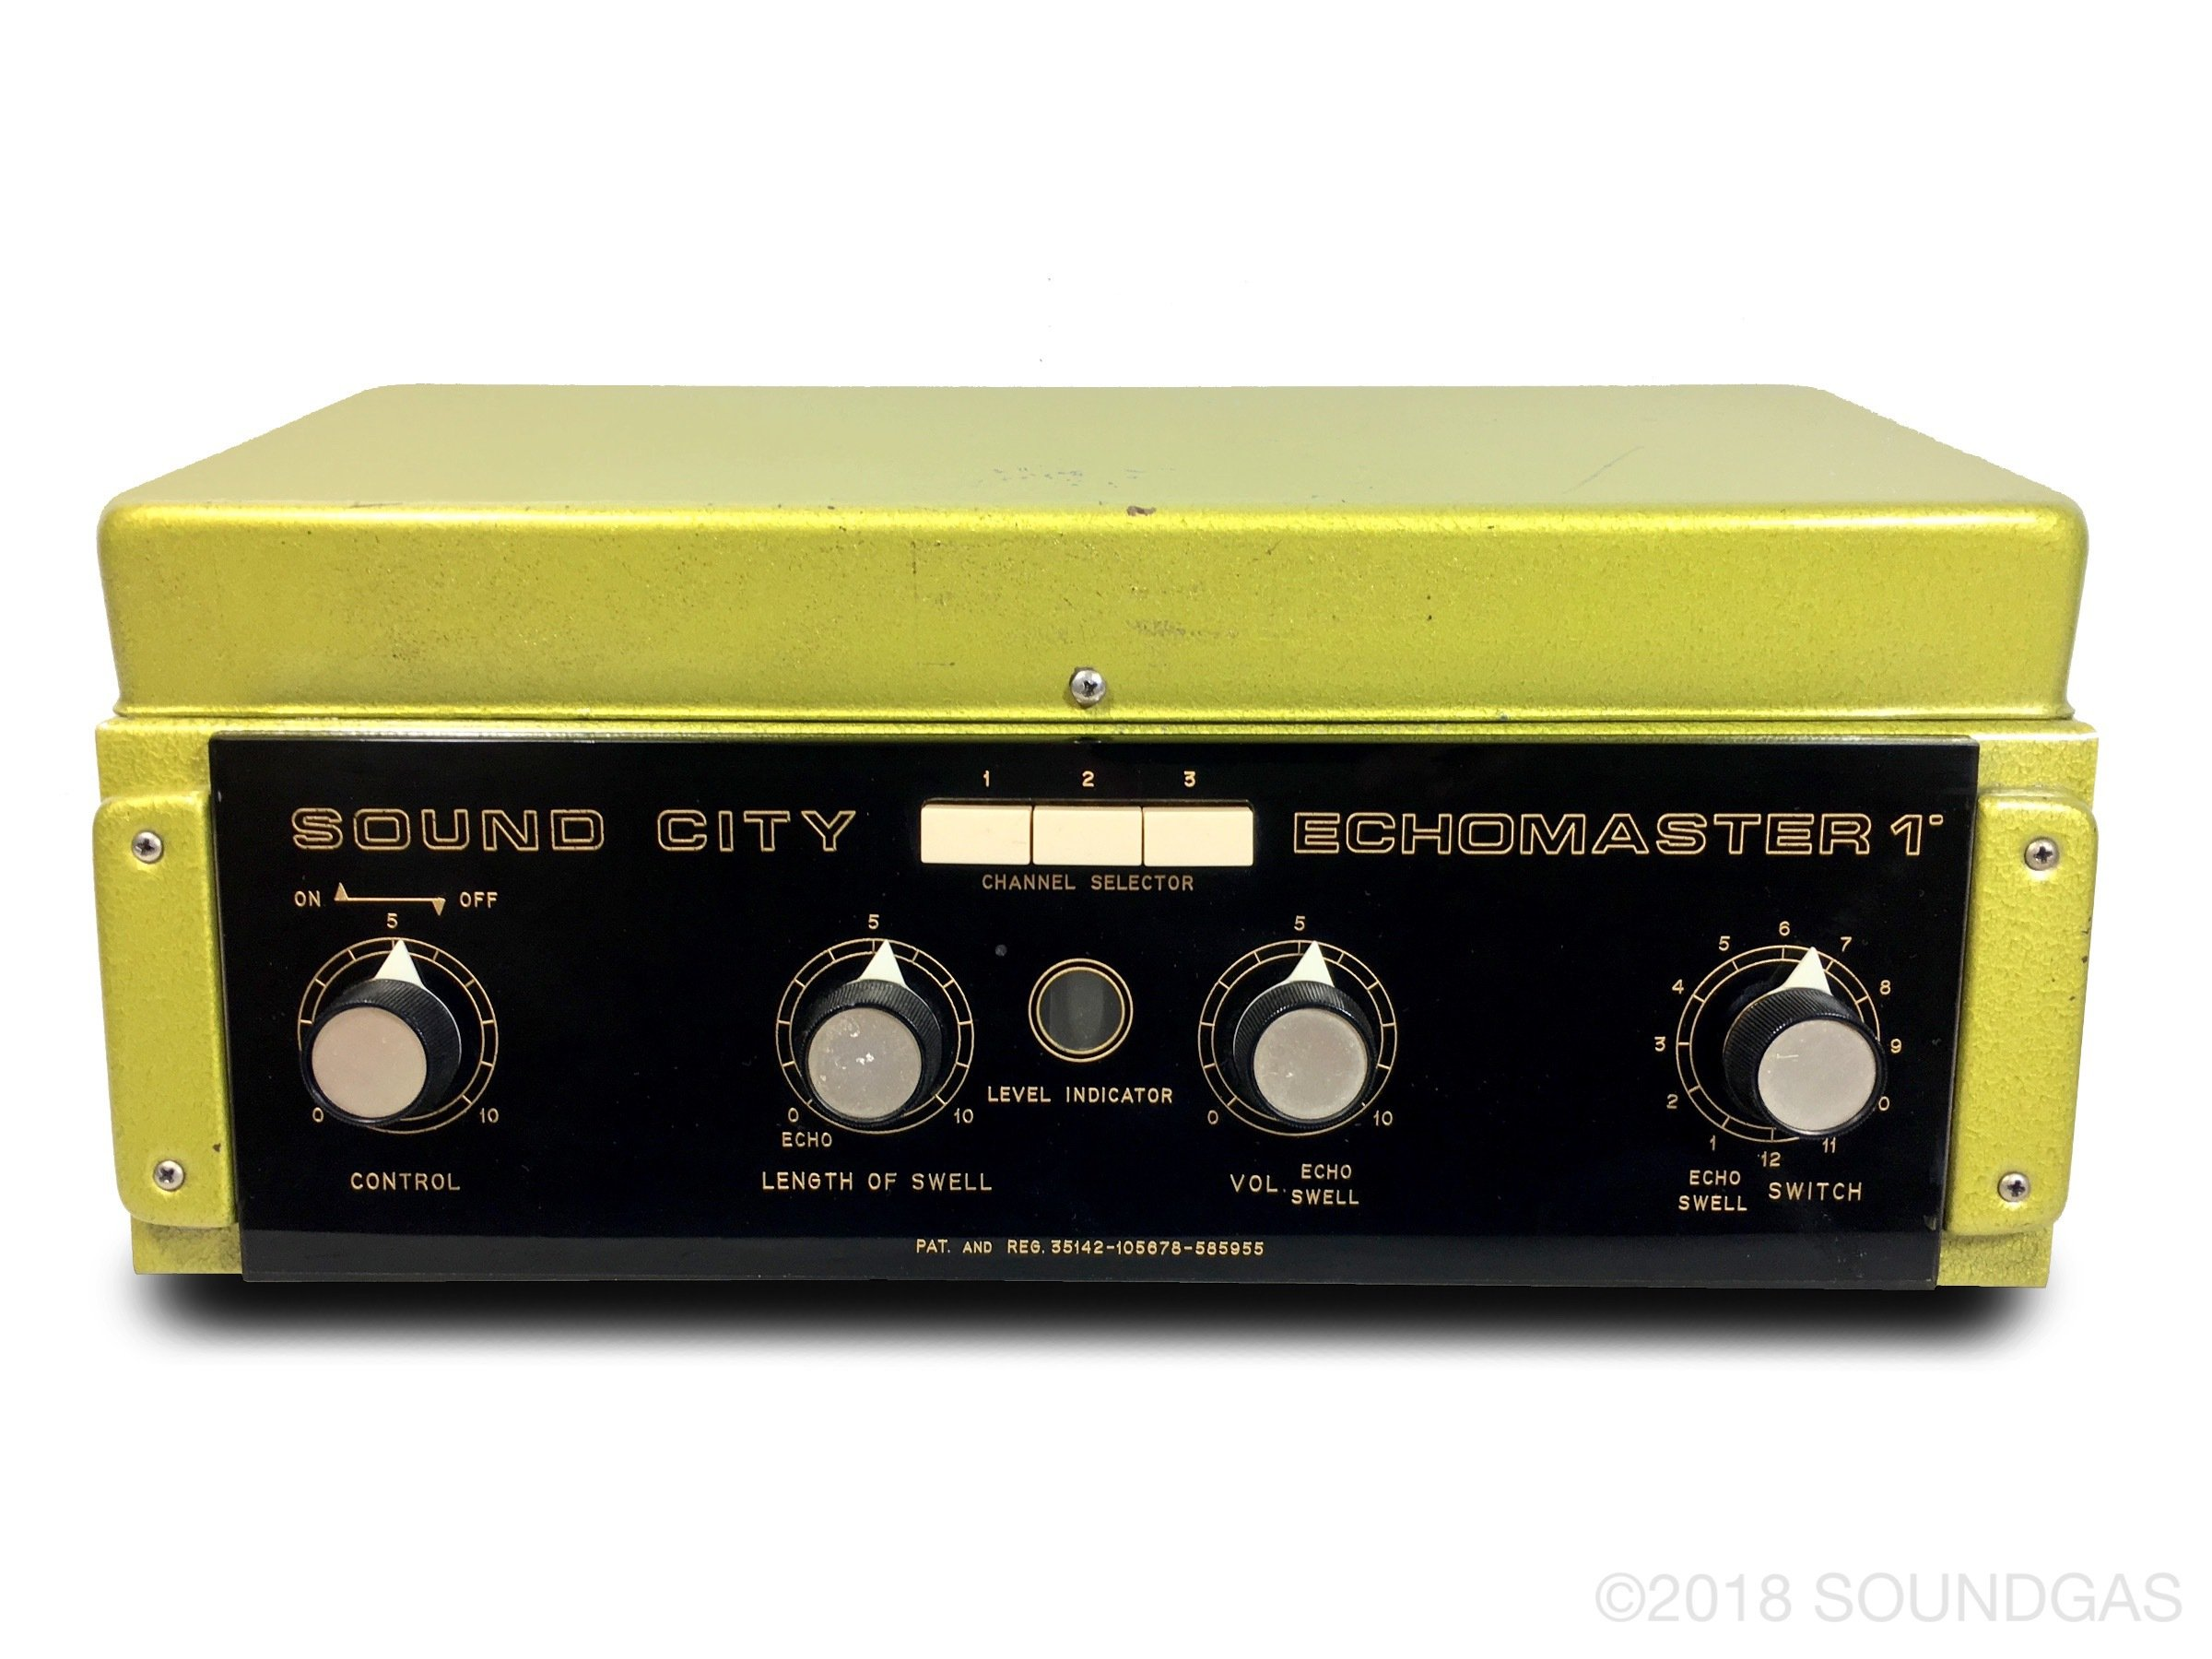 Sound-City-Echomaster-1_-Binson-Echorec-Cover-2